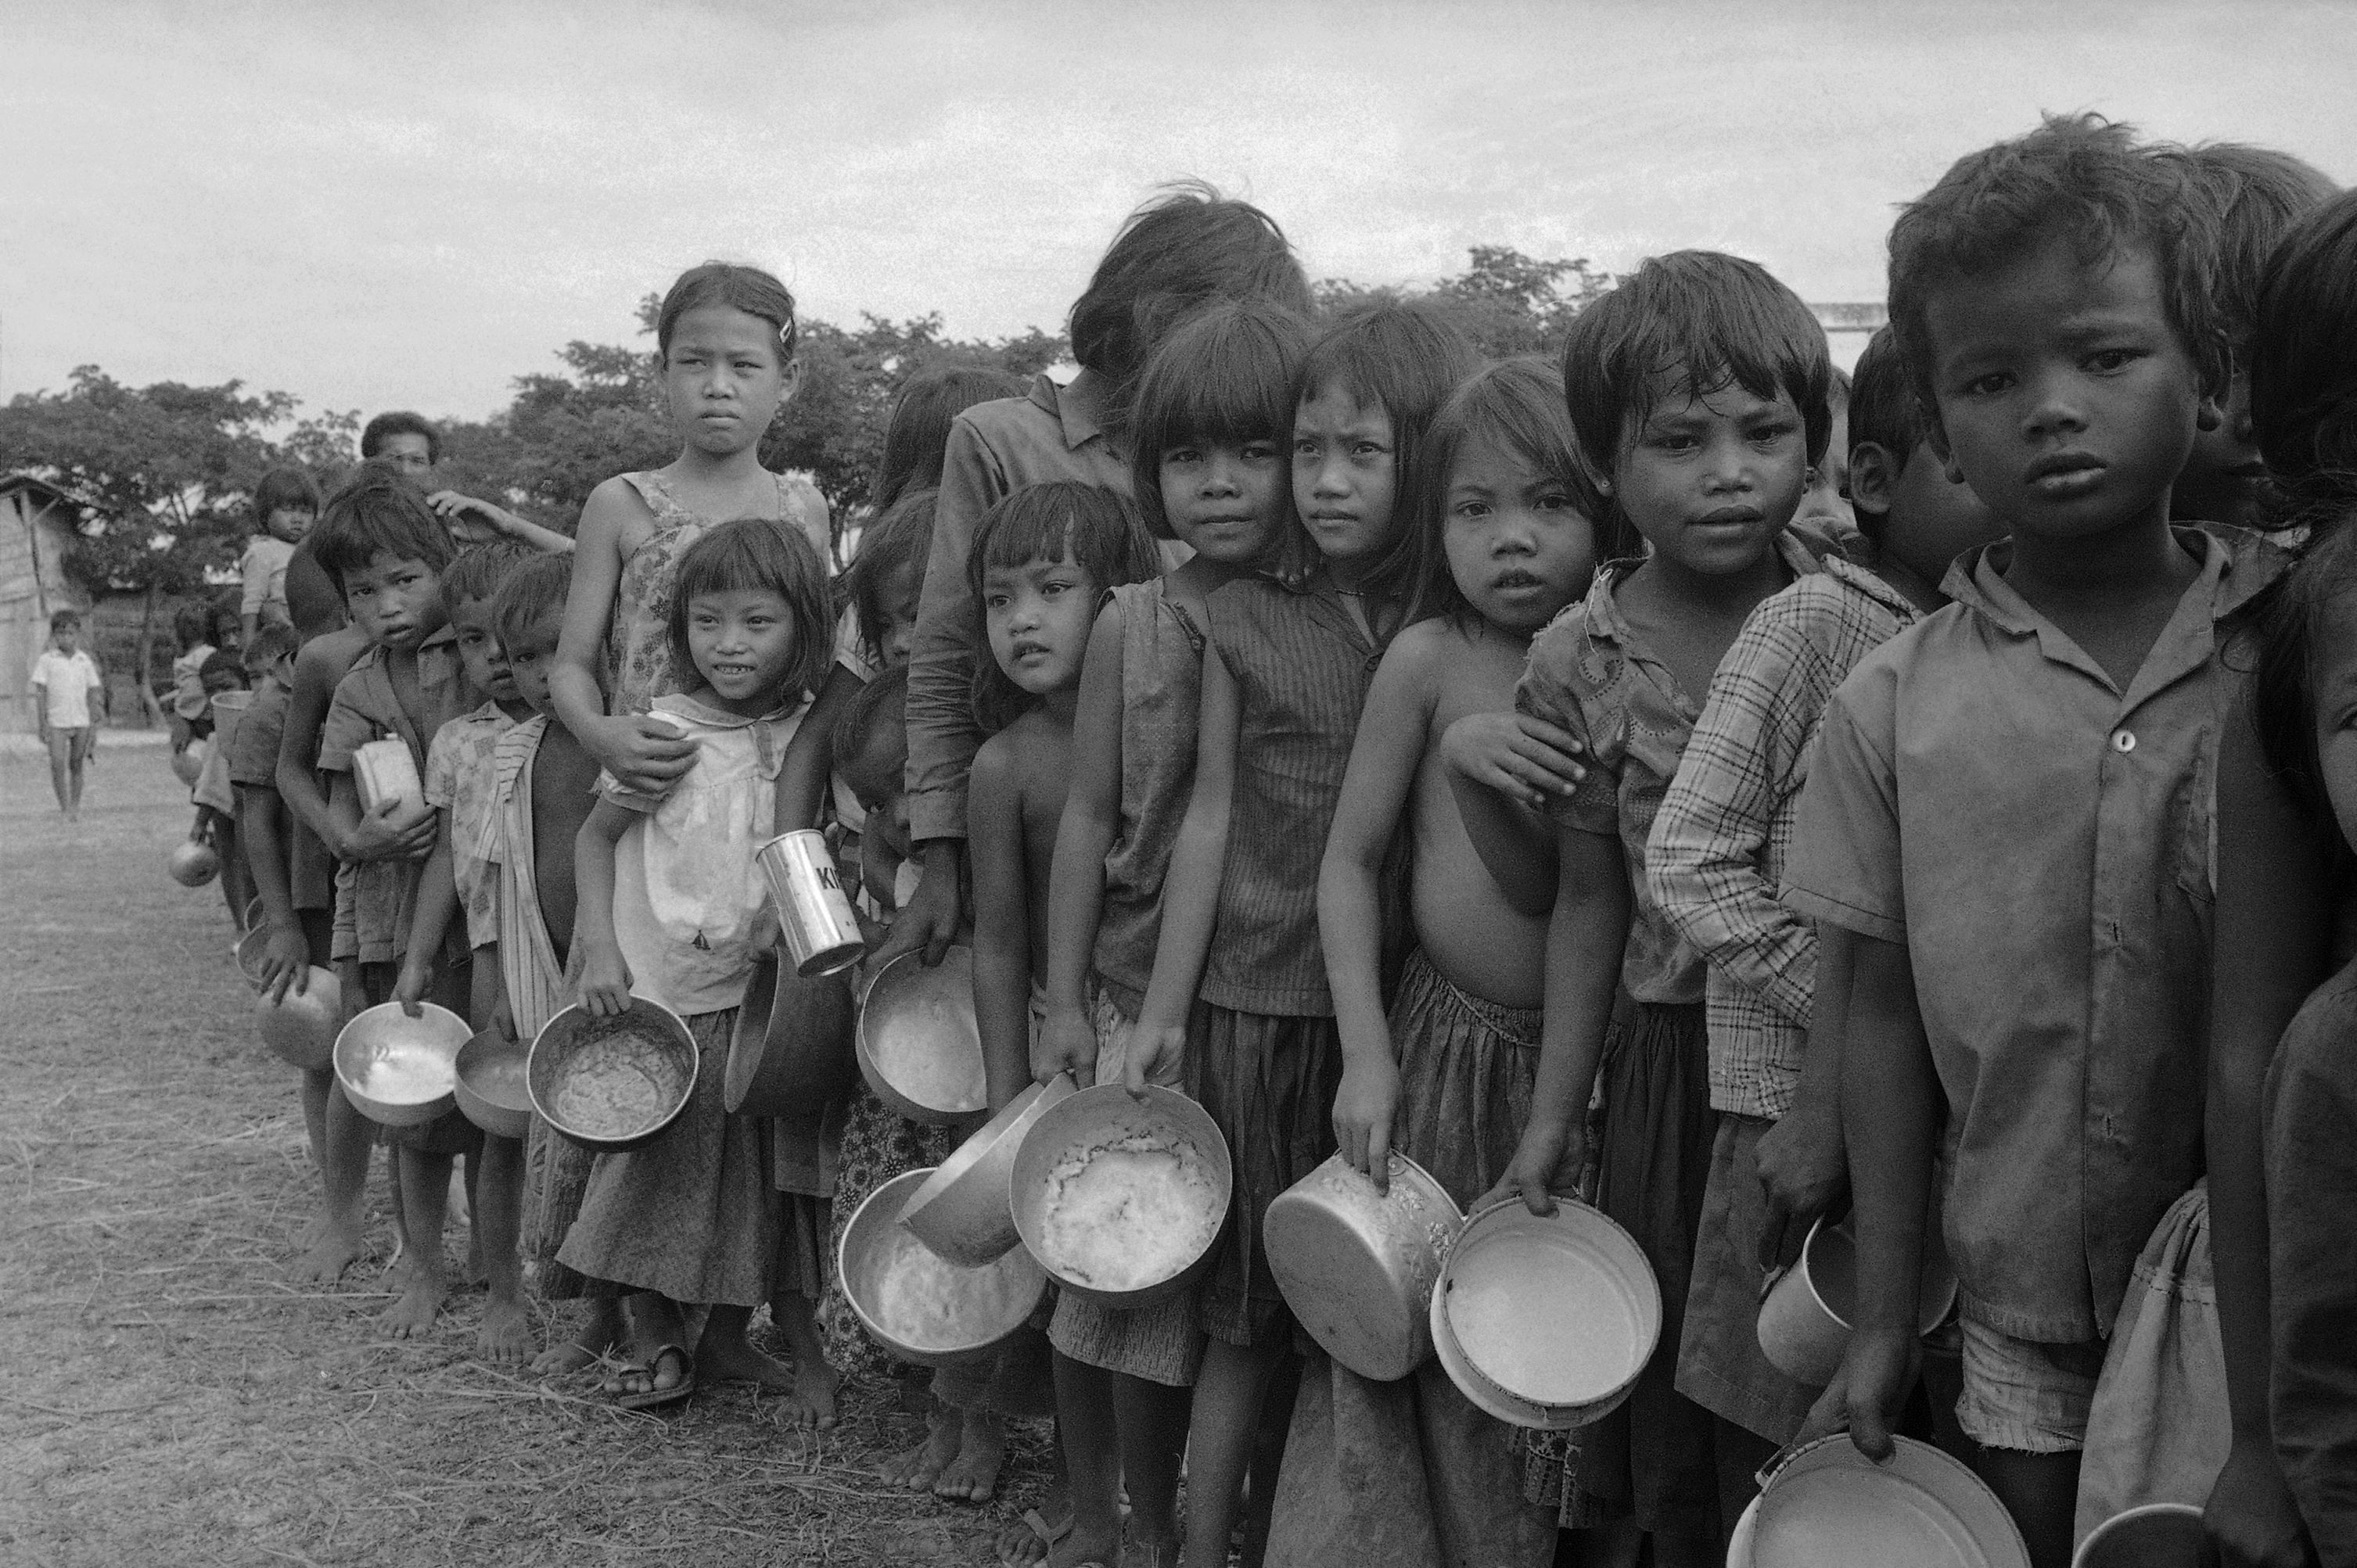 cambodian genocide essay In cambodia major genocide occurred in 1975 and was very similar to that of the crucible which is why these forms of hysteria connect without a doubt fear, genocides number one weapon, it's used in.